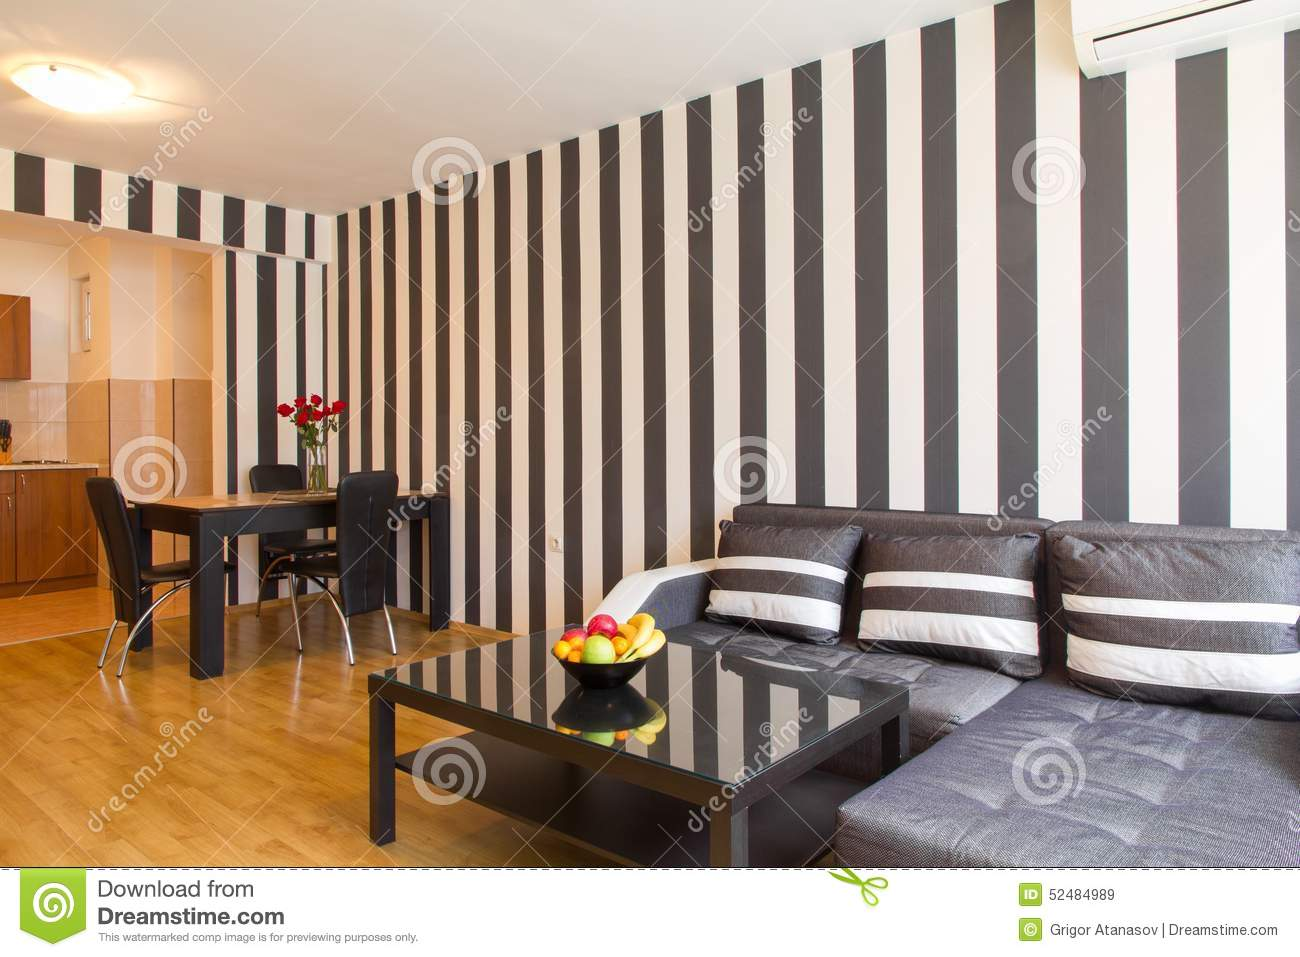 Living Room With Black And White Striped Walls Stock Image Of Spider Coffee 52484989